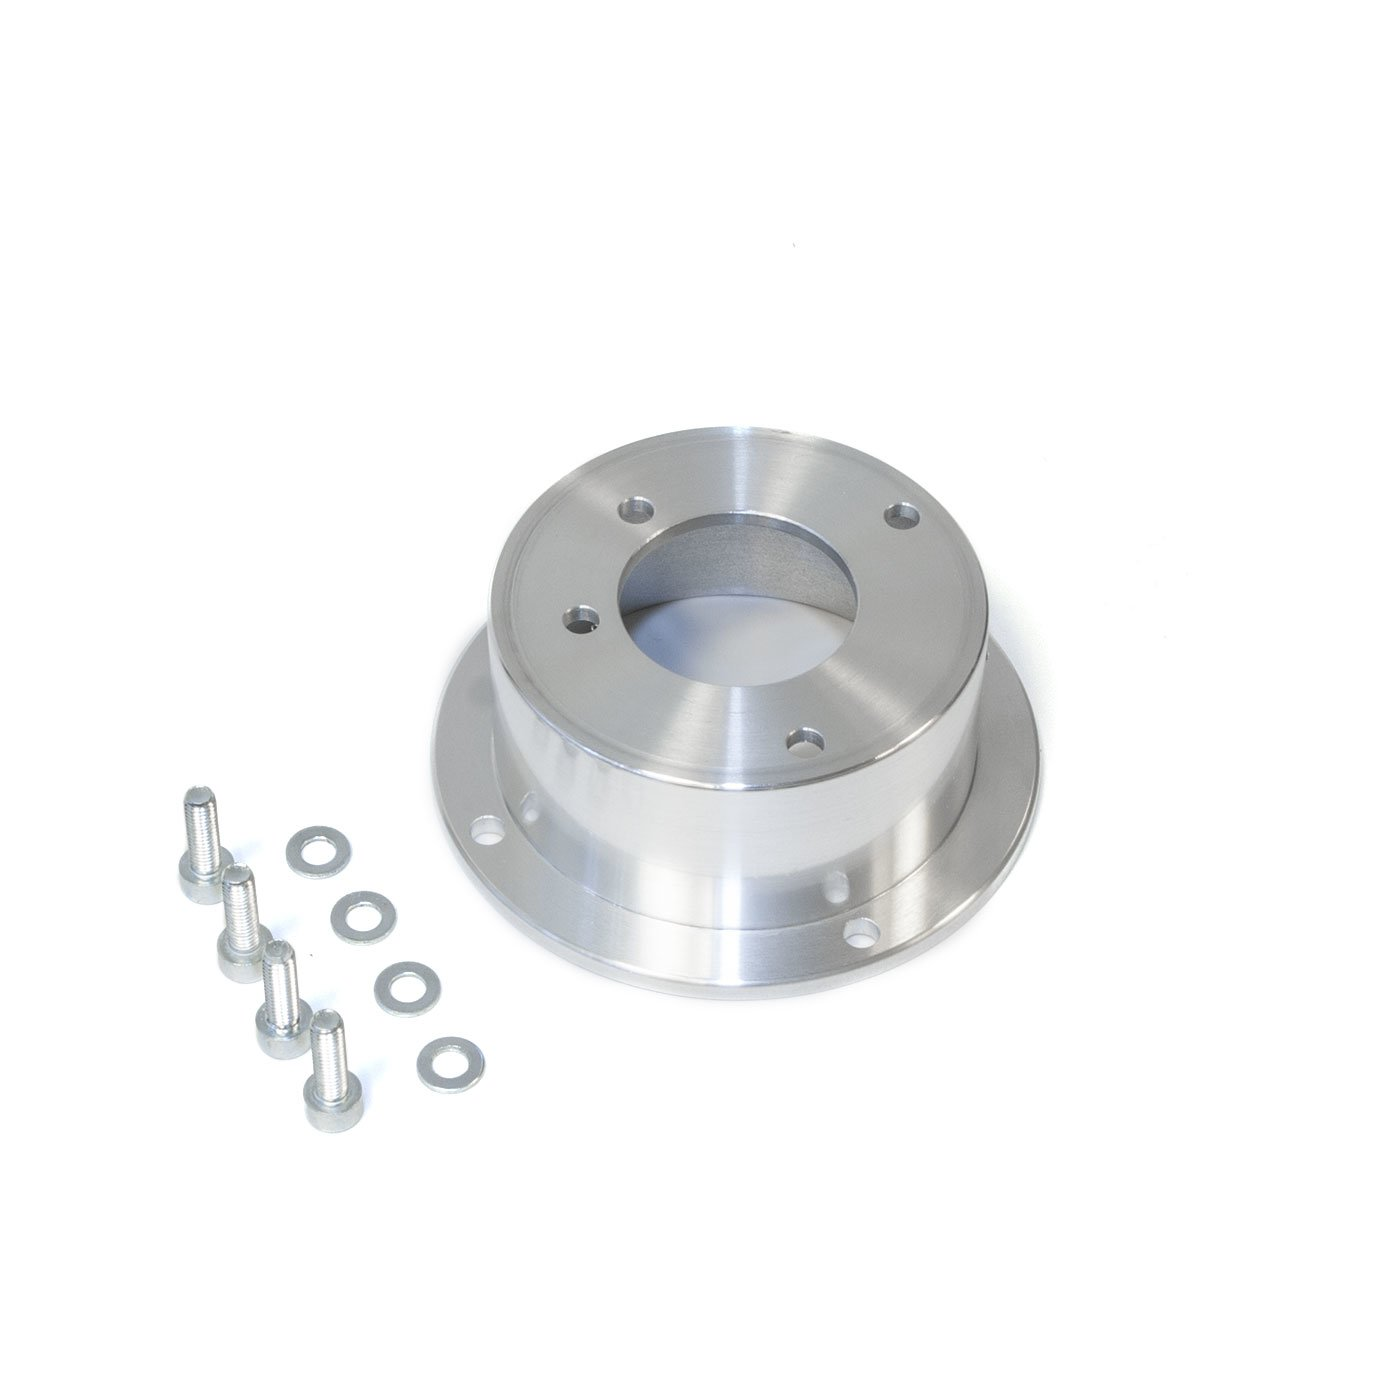 Motor Mount for TITAN ZG38/38S/38SC, length 36 mm